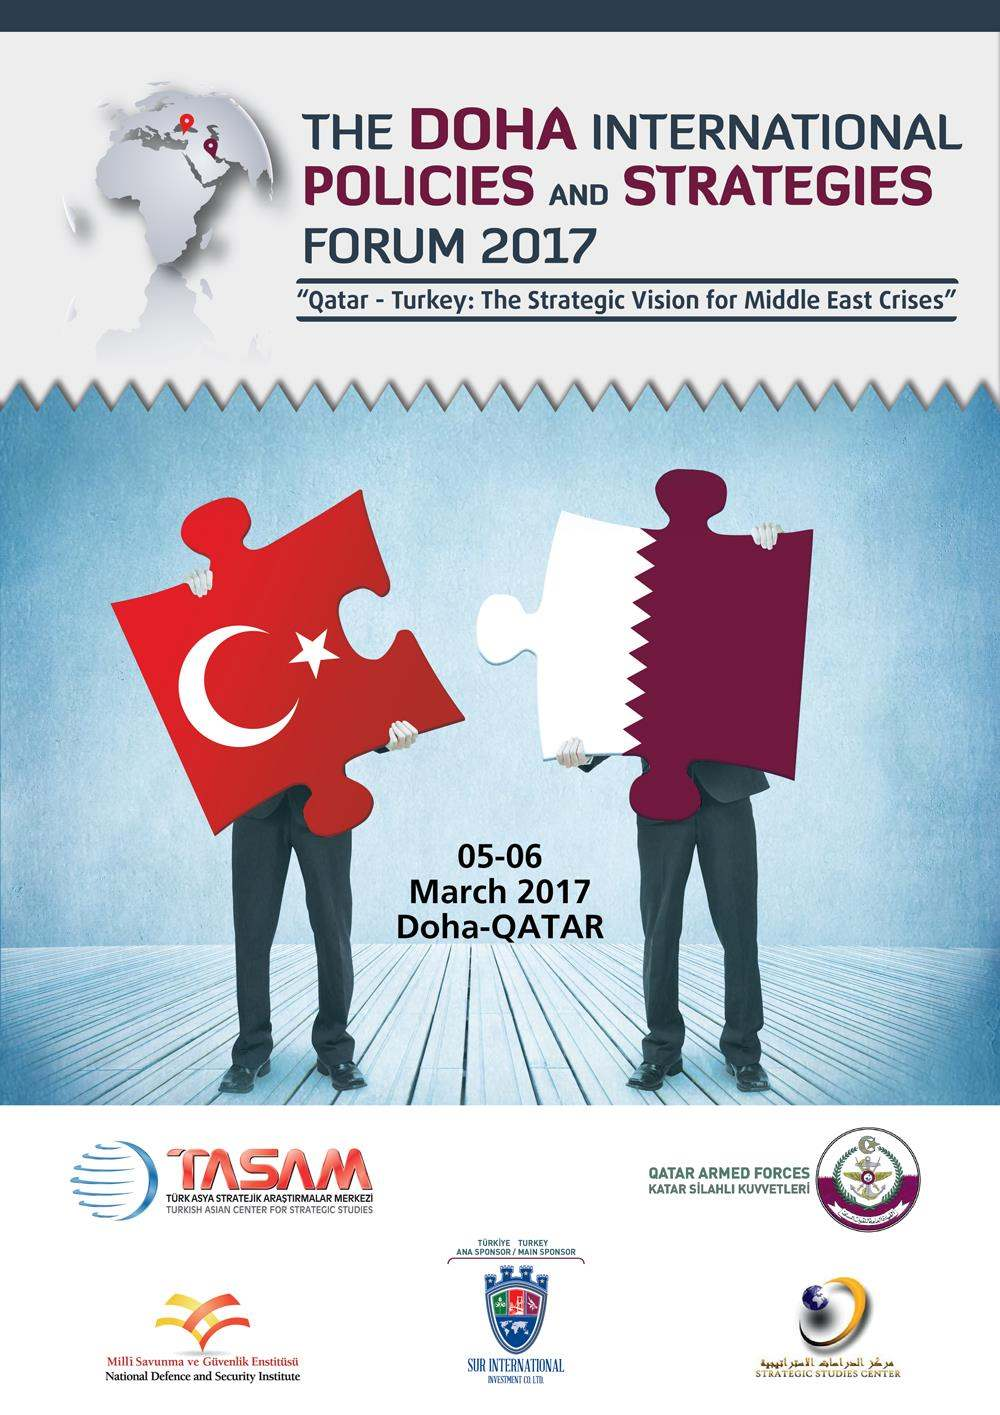 The Doha International Policies and Strategies Forum 2017